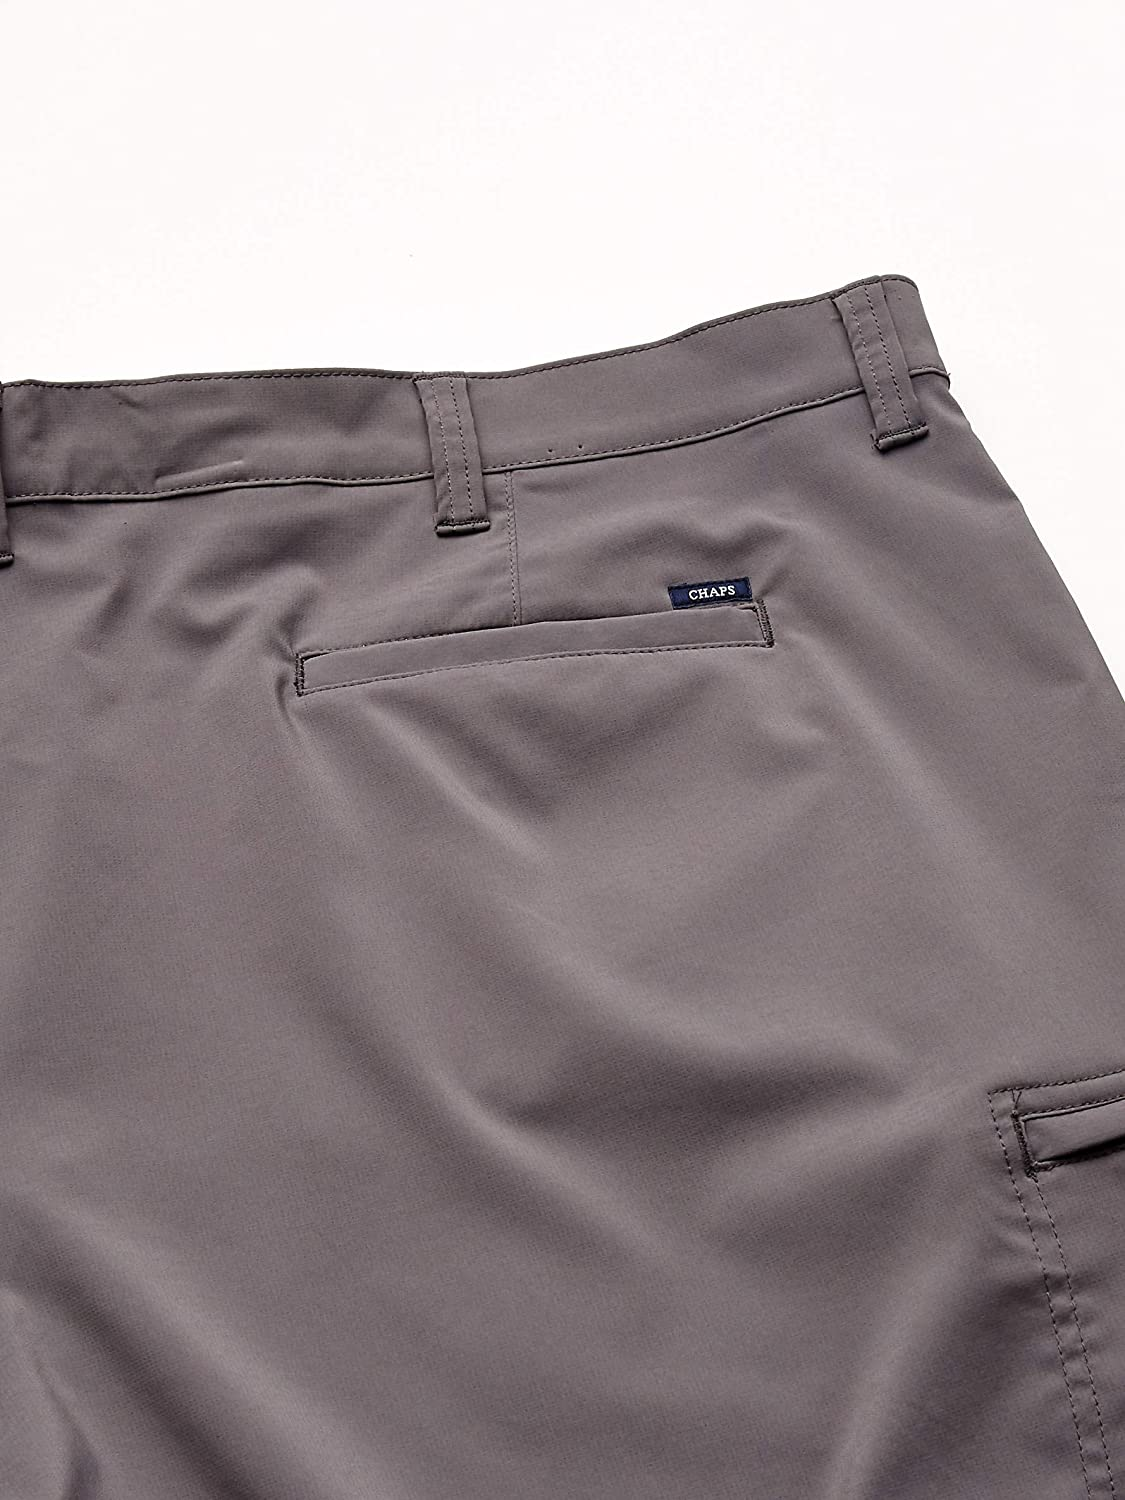 Chaps Mens Big and Tall Performance Cargo Short